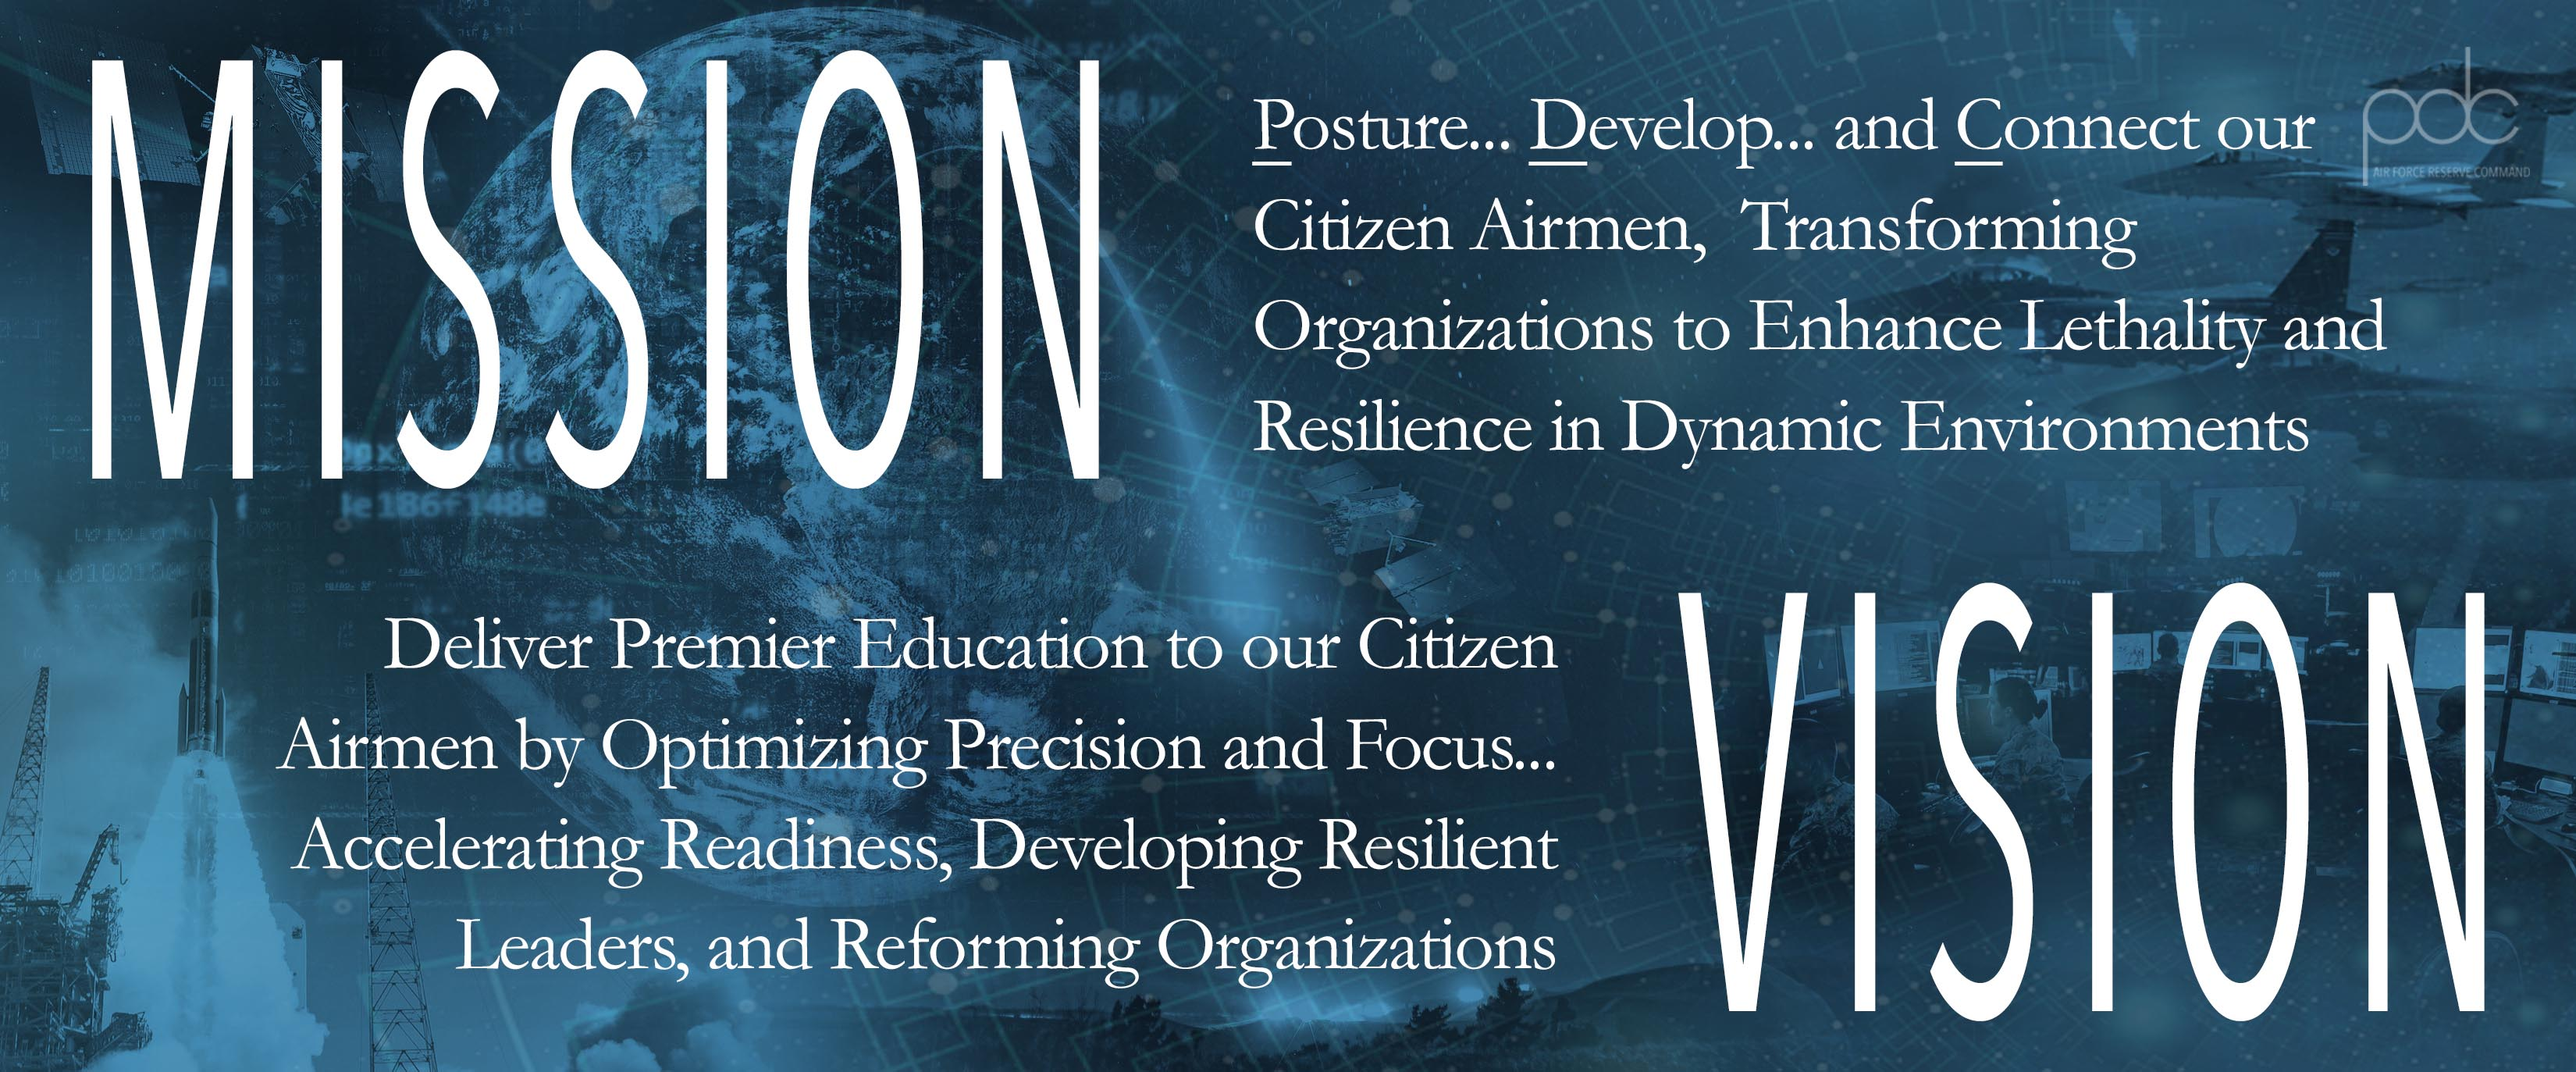 Mission and vision statement for the Professional Development Center